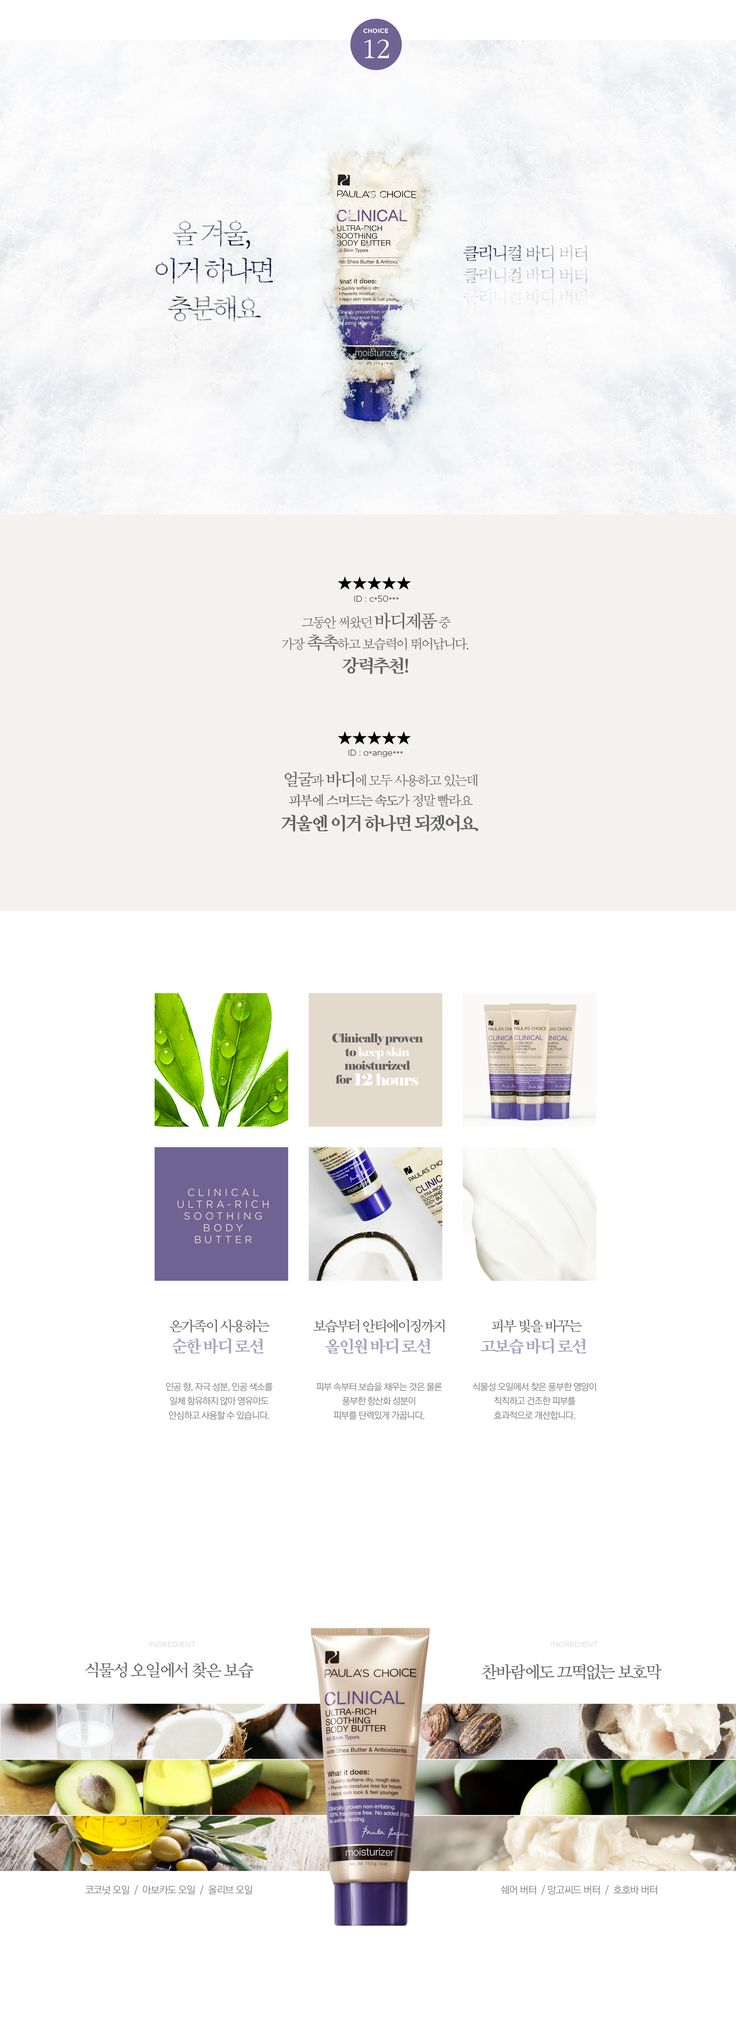 [PAULA'S CHOICE] WEB / DESIGN / EVENTPAGE / SALE / COSME / BODY / CREAM / PRODUCT / COSMETICS / EVENT / PAGE / SALE / WEBPAGE / PR / 화장품 / 이벤트 / 웹디자인 / 폴라초이스 / 디자인